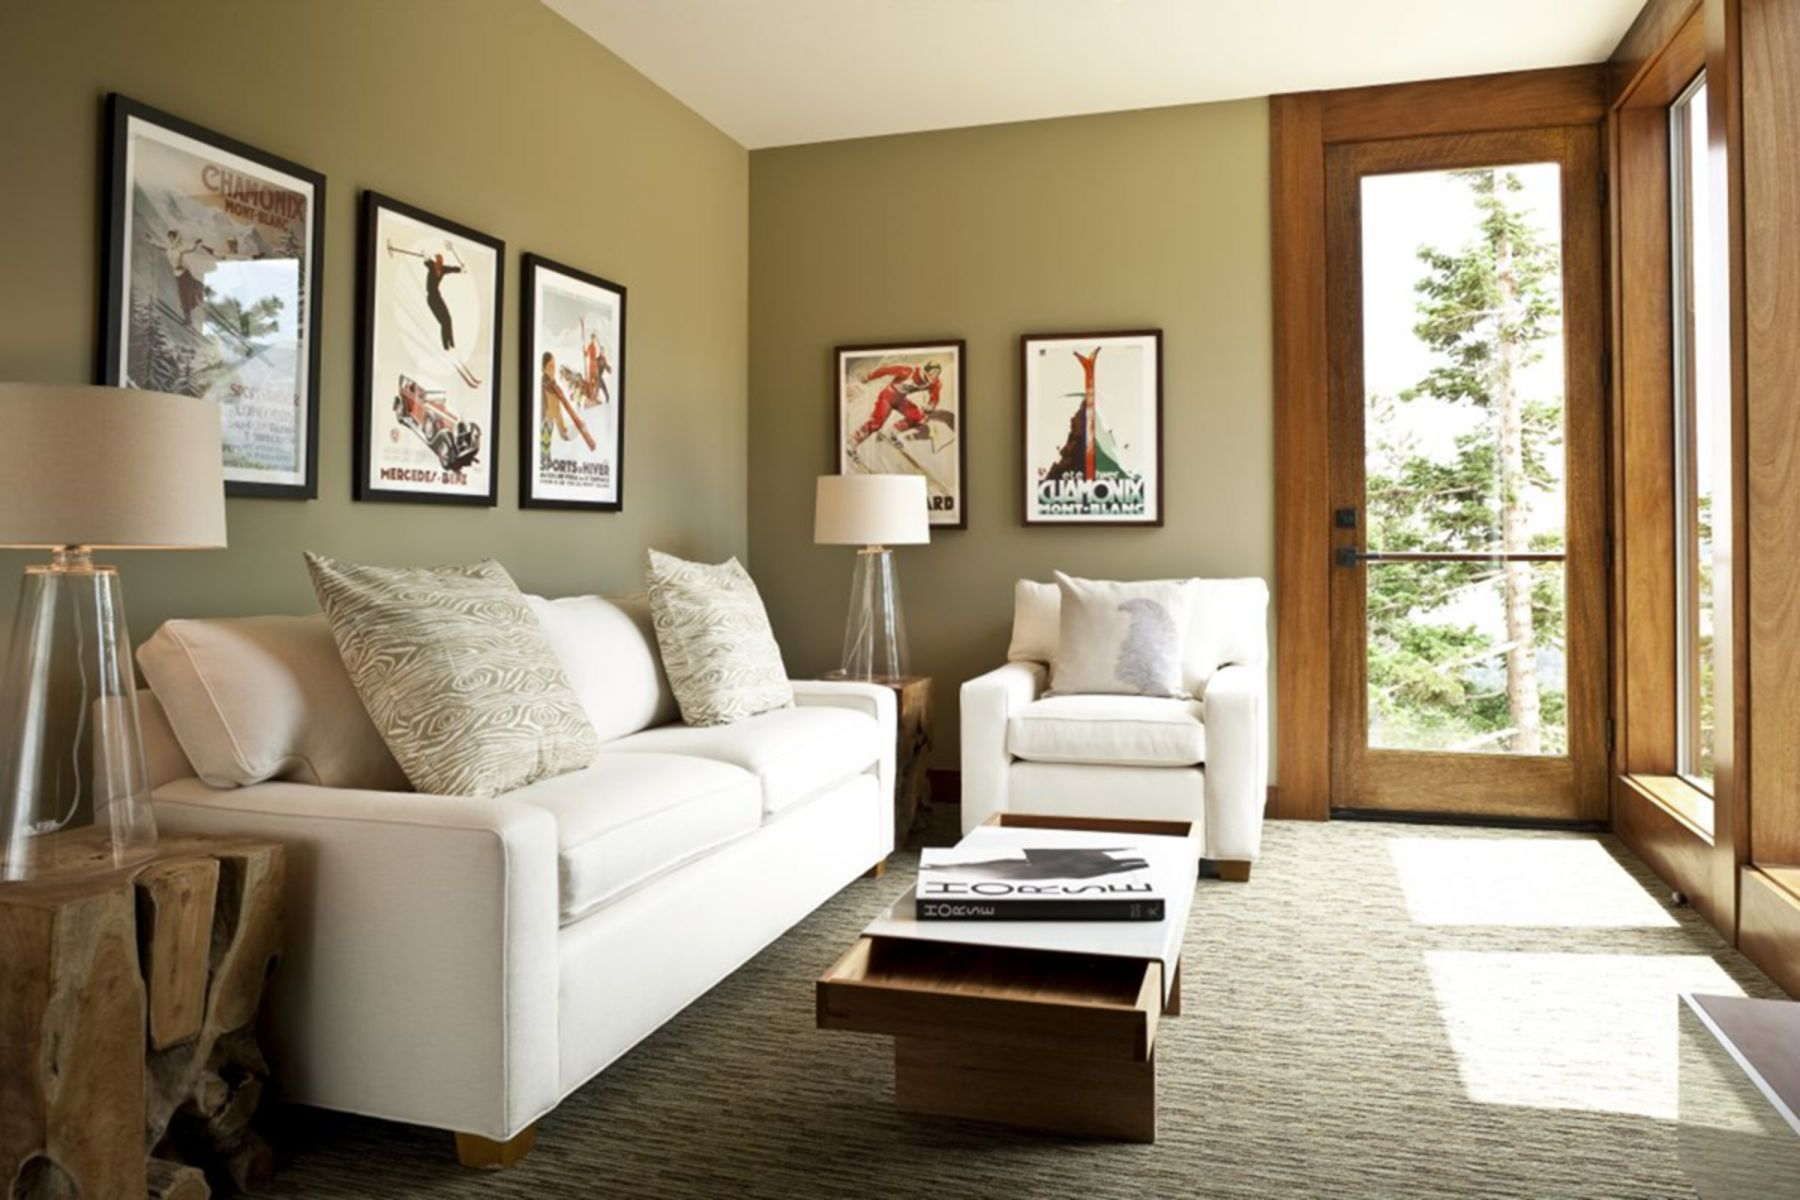 Small Living Room For Tiny House 1   Small living room layout, Interior  design apartment small, Small living room furniture